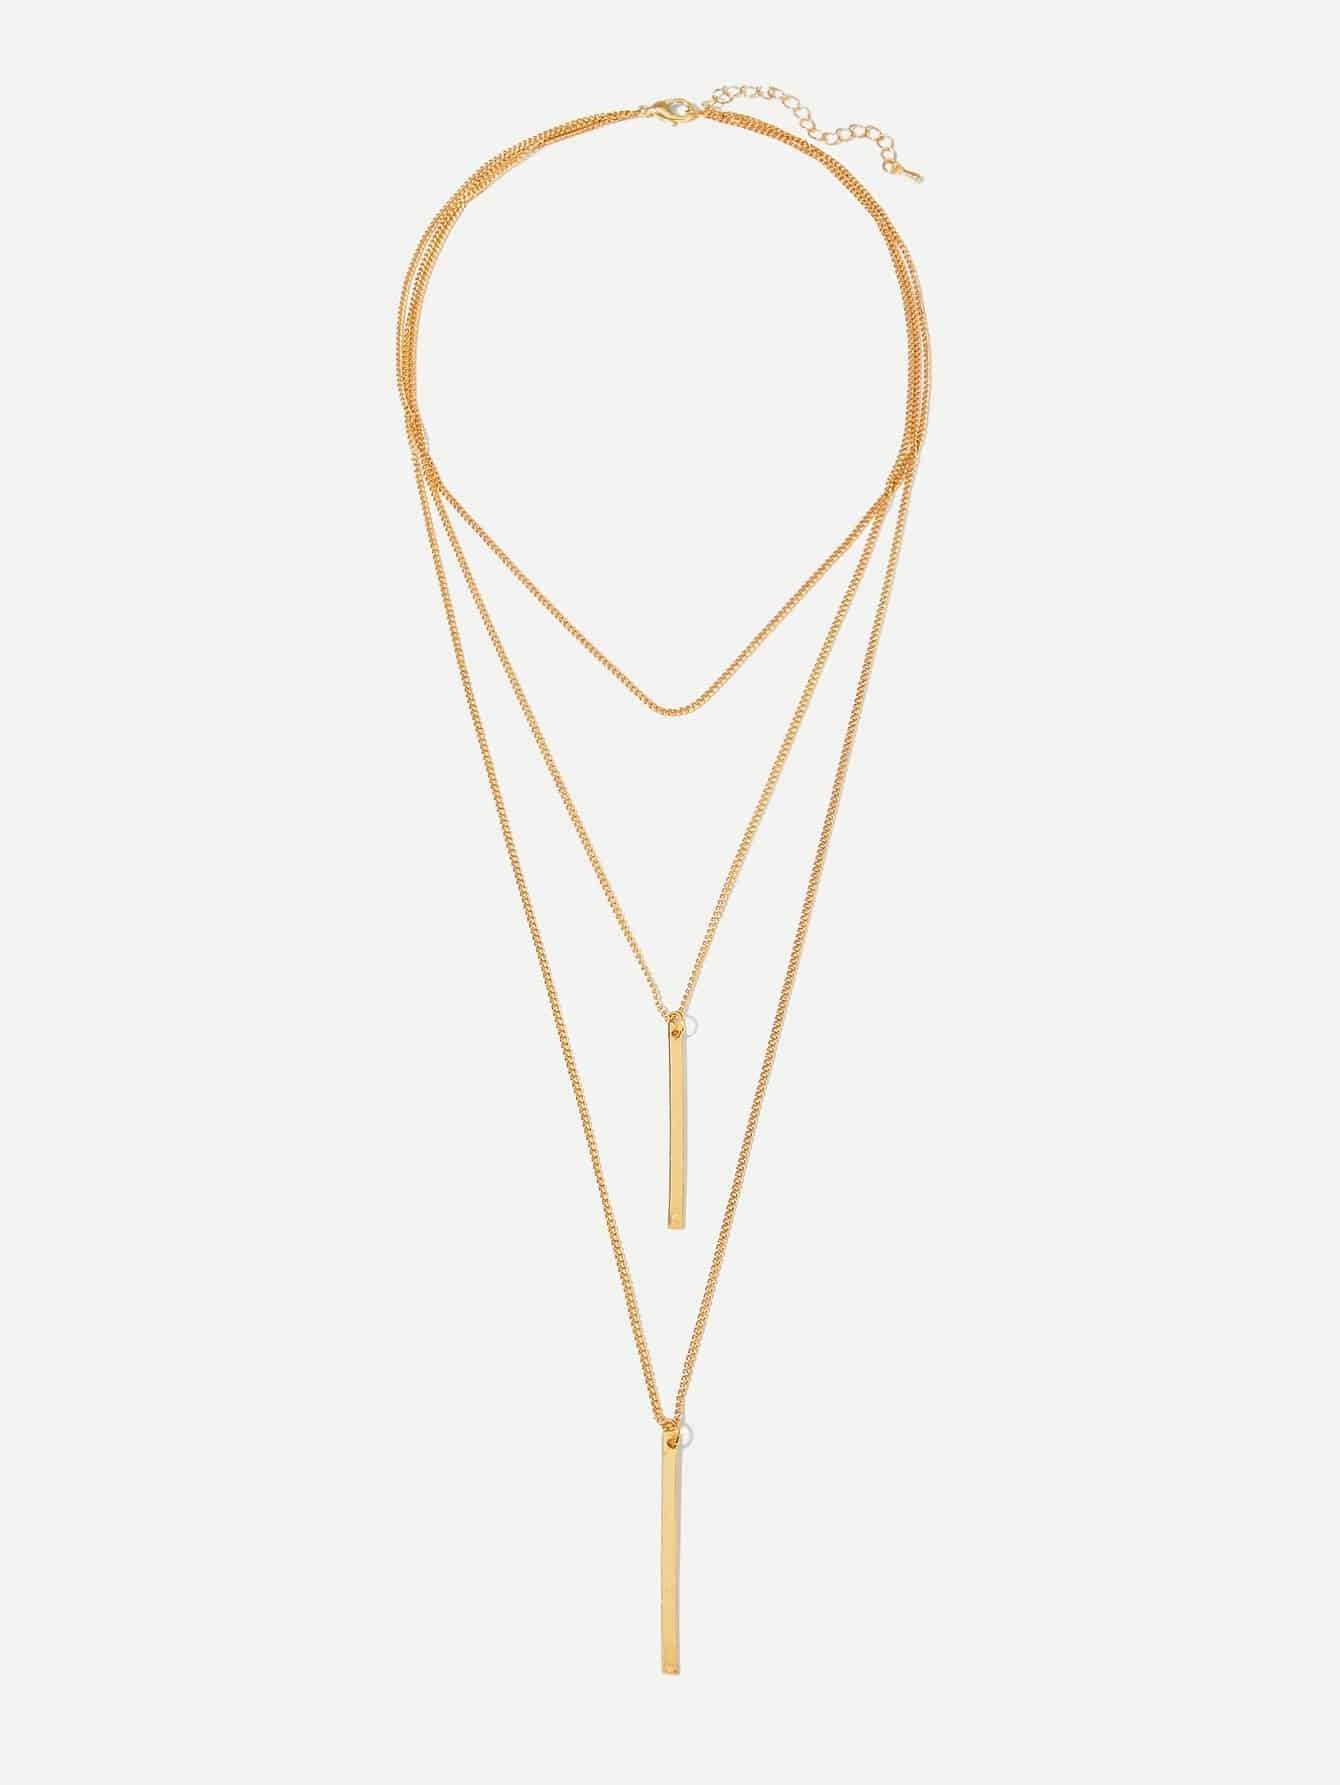 Golden 3 Layered Chain Necklace With Bar Pendant